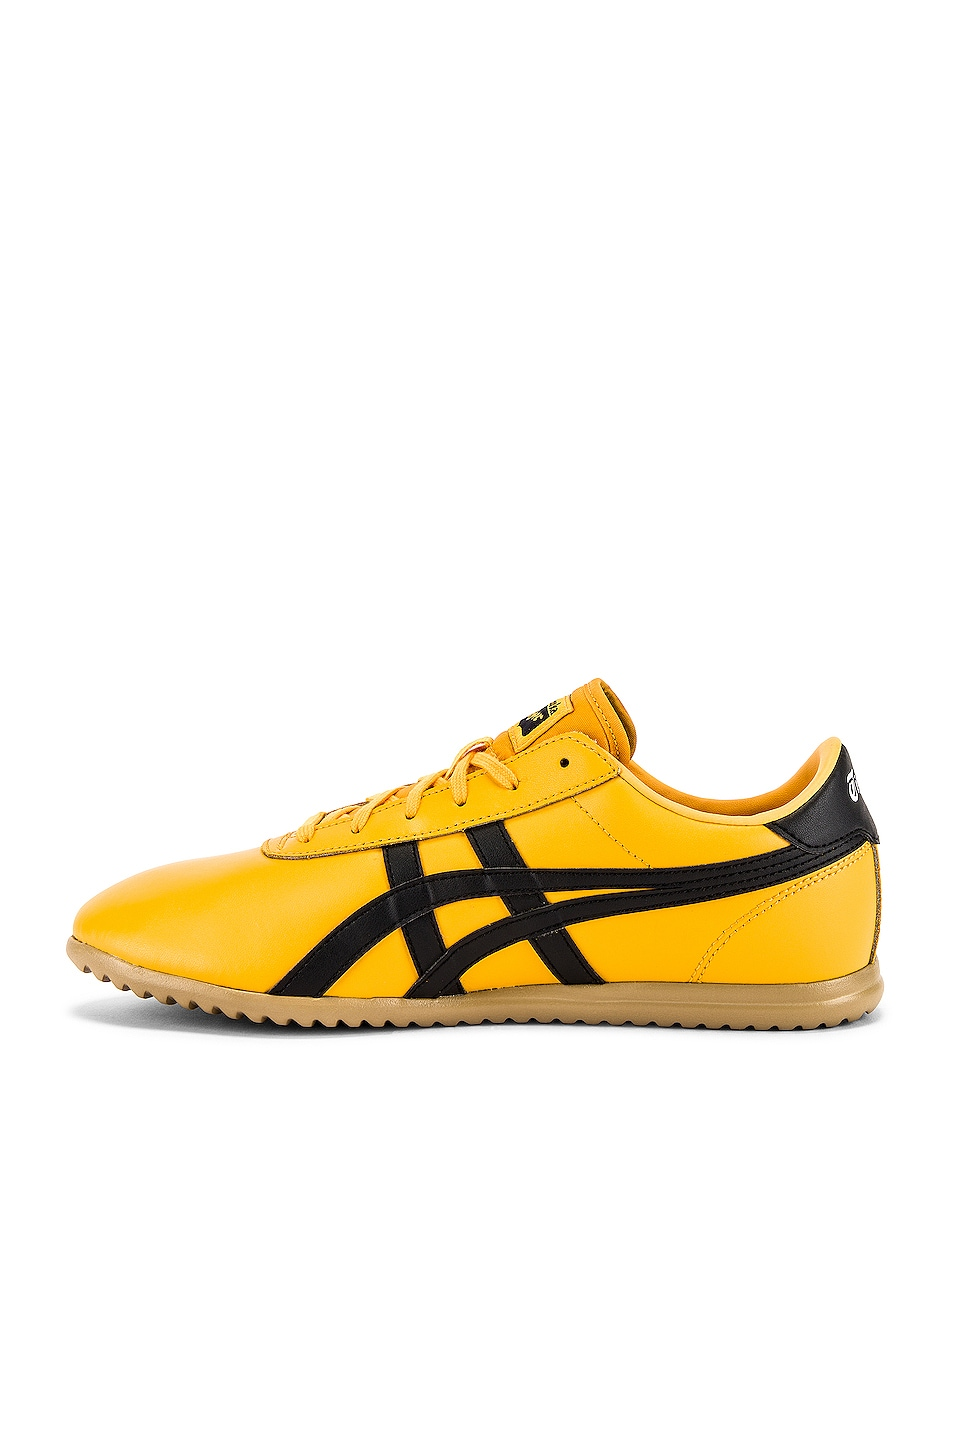 Image 5 of Onitsuka Tiger Tai-Chi-Reb in Tiger Yellow & Black